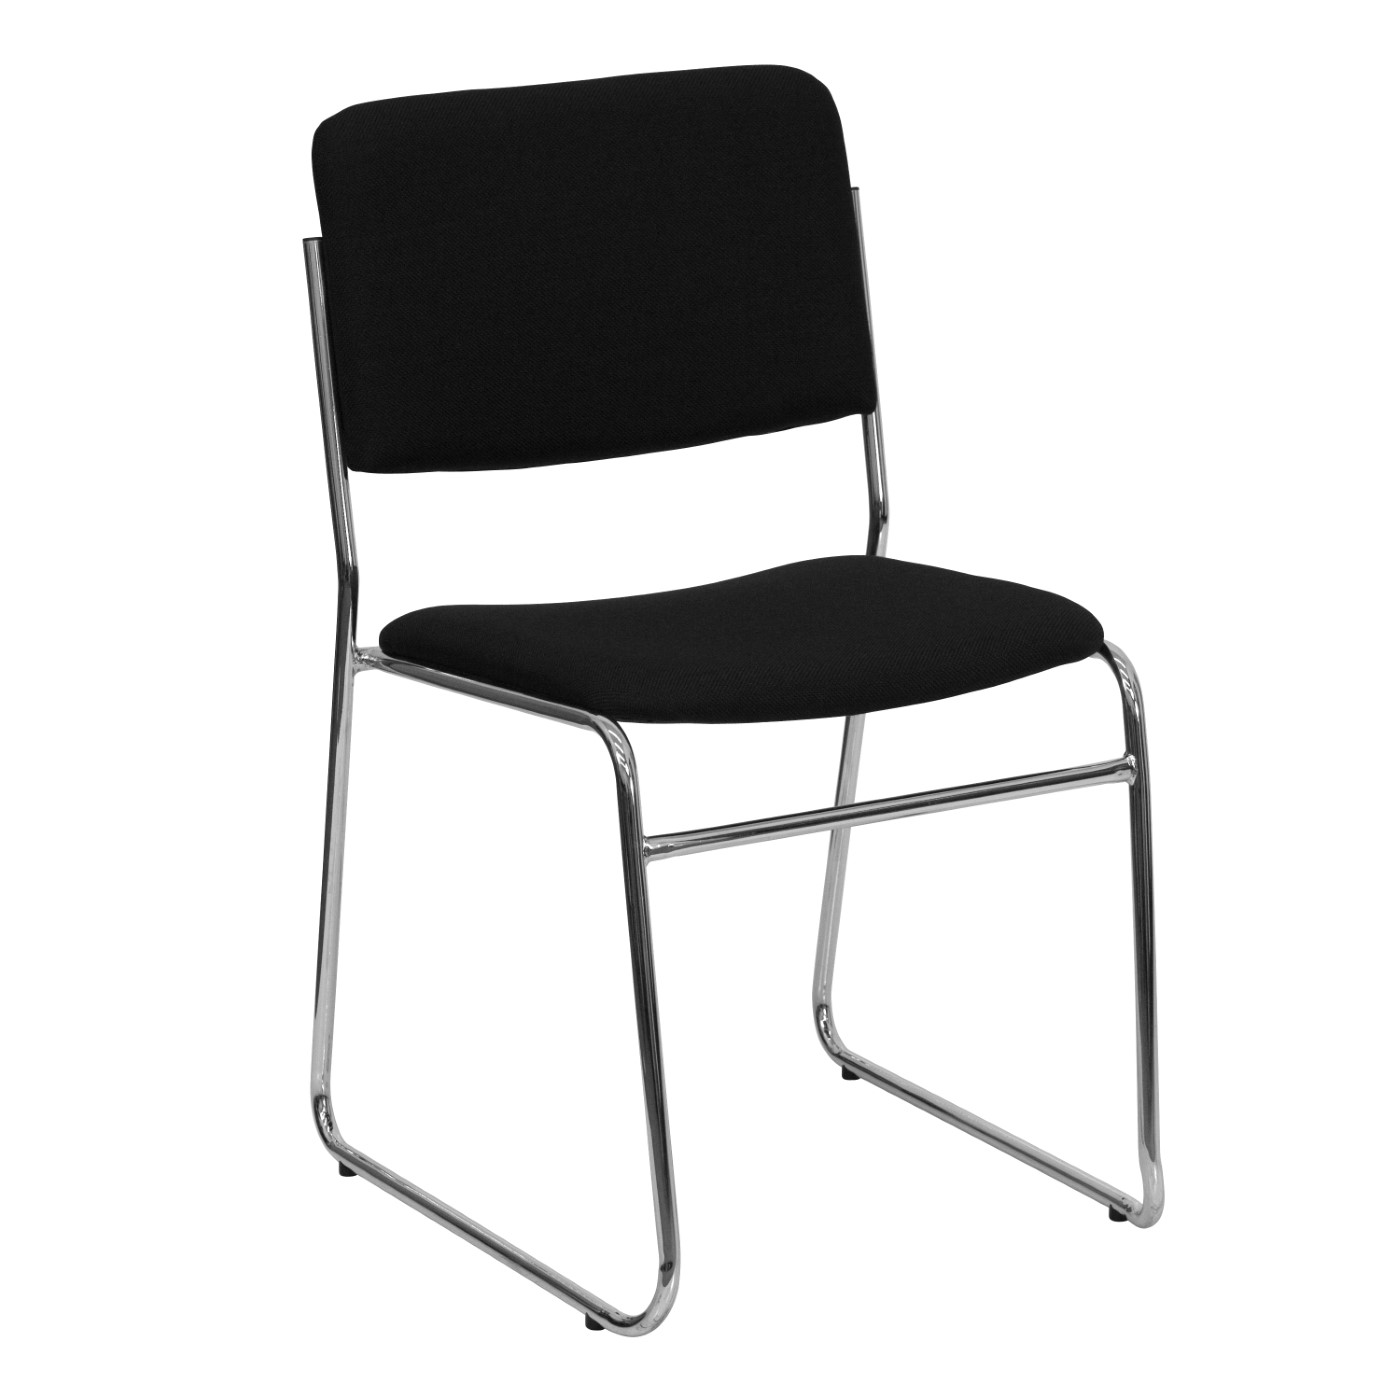 TOUGH ENOUGH Series 1000 lb. Capacity Black Fabric High Density Stacking Chair with Chrome Sled Base